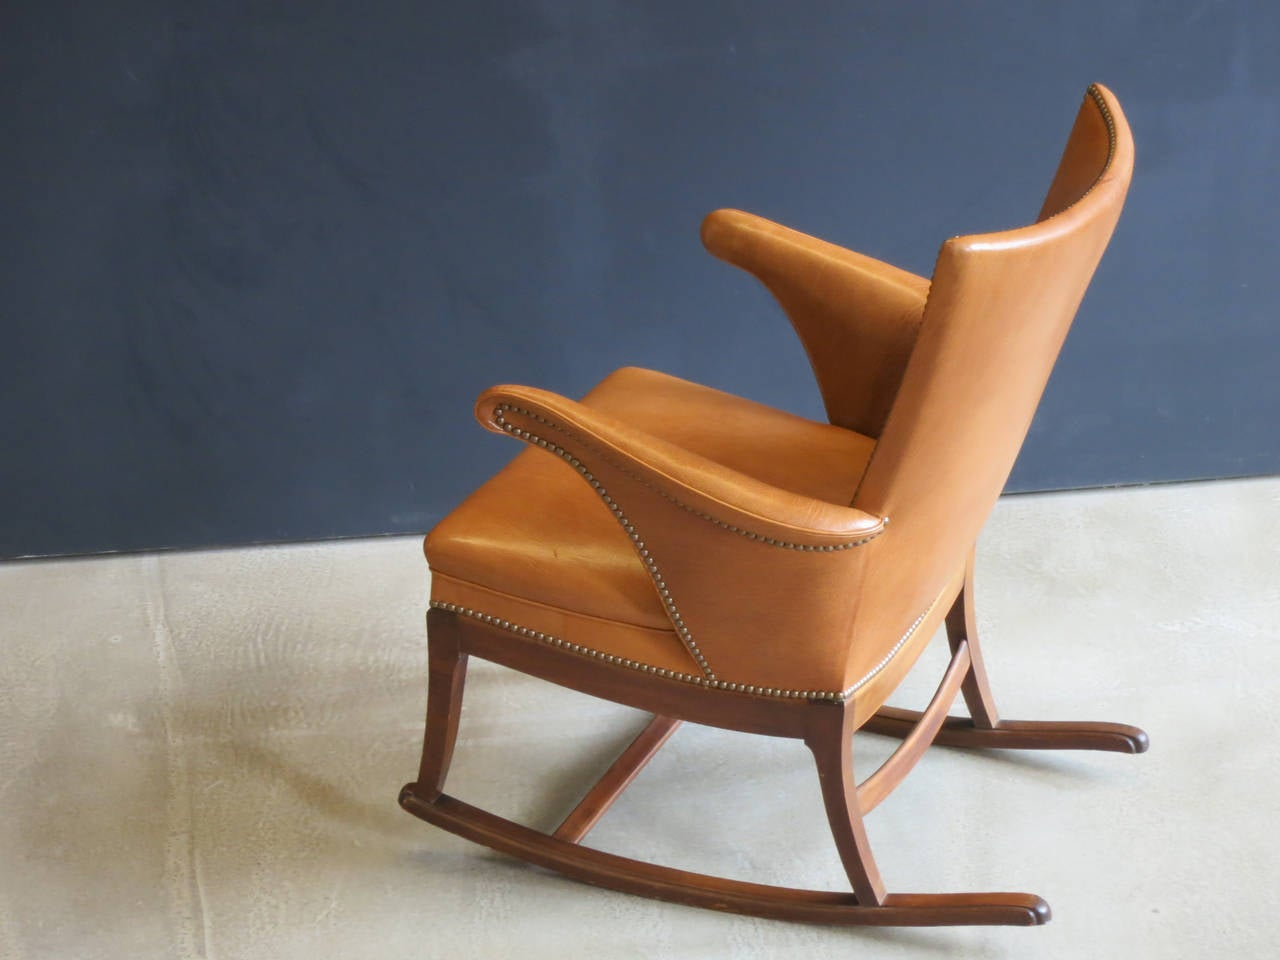 1930s Rocking Chair by Frits Henningsen 9